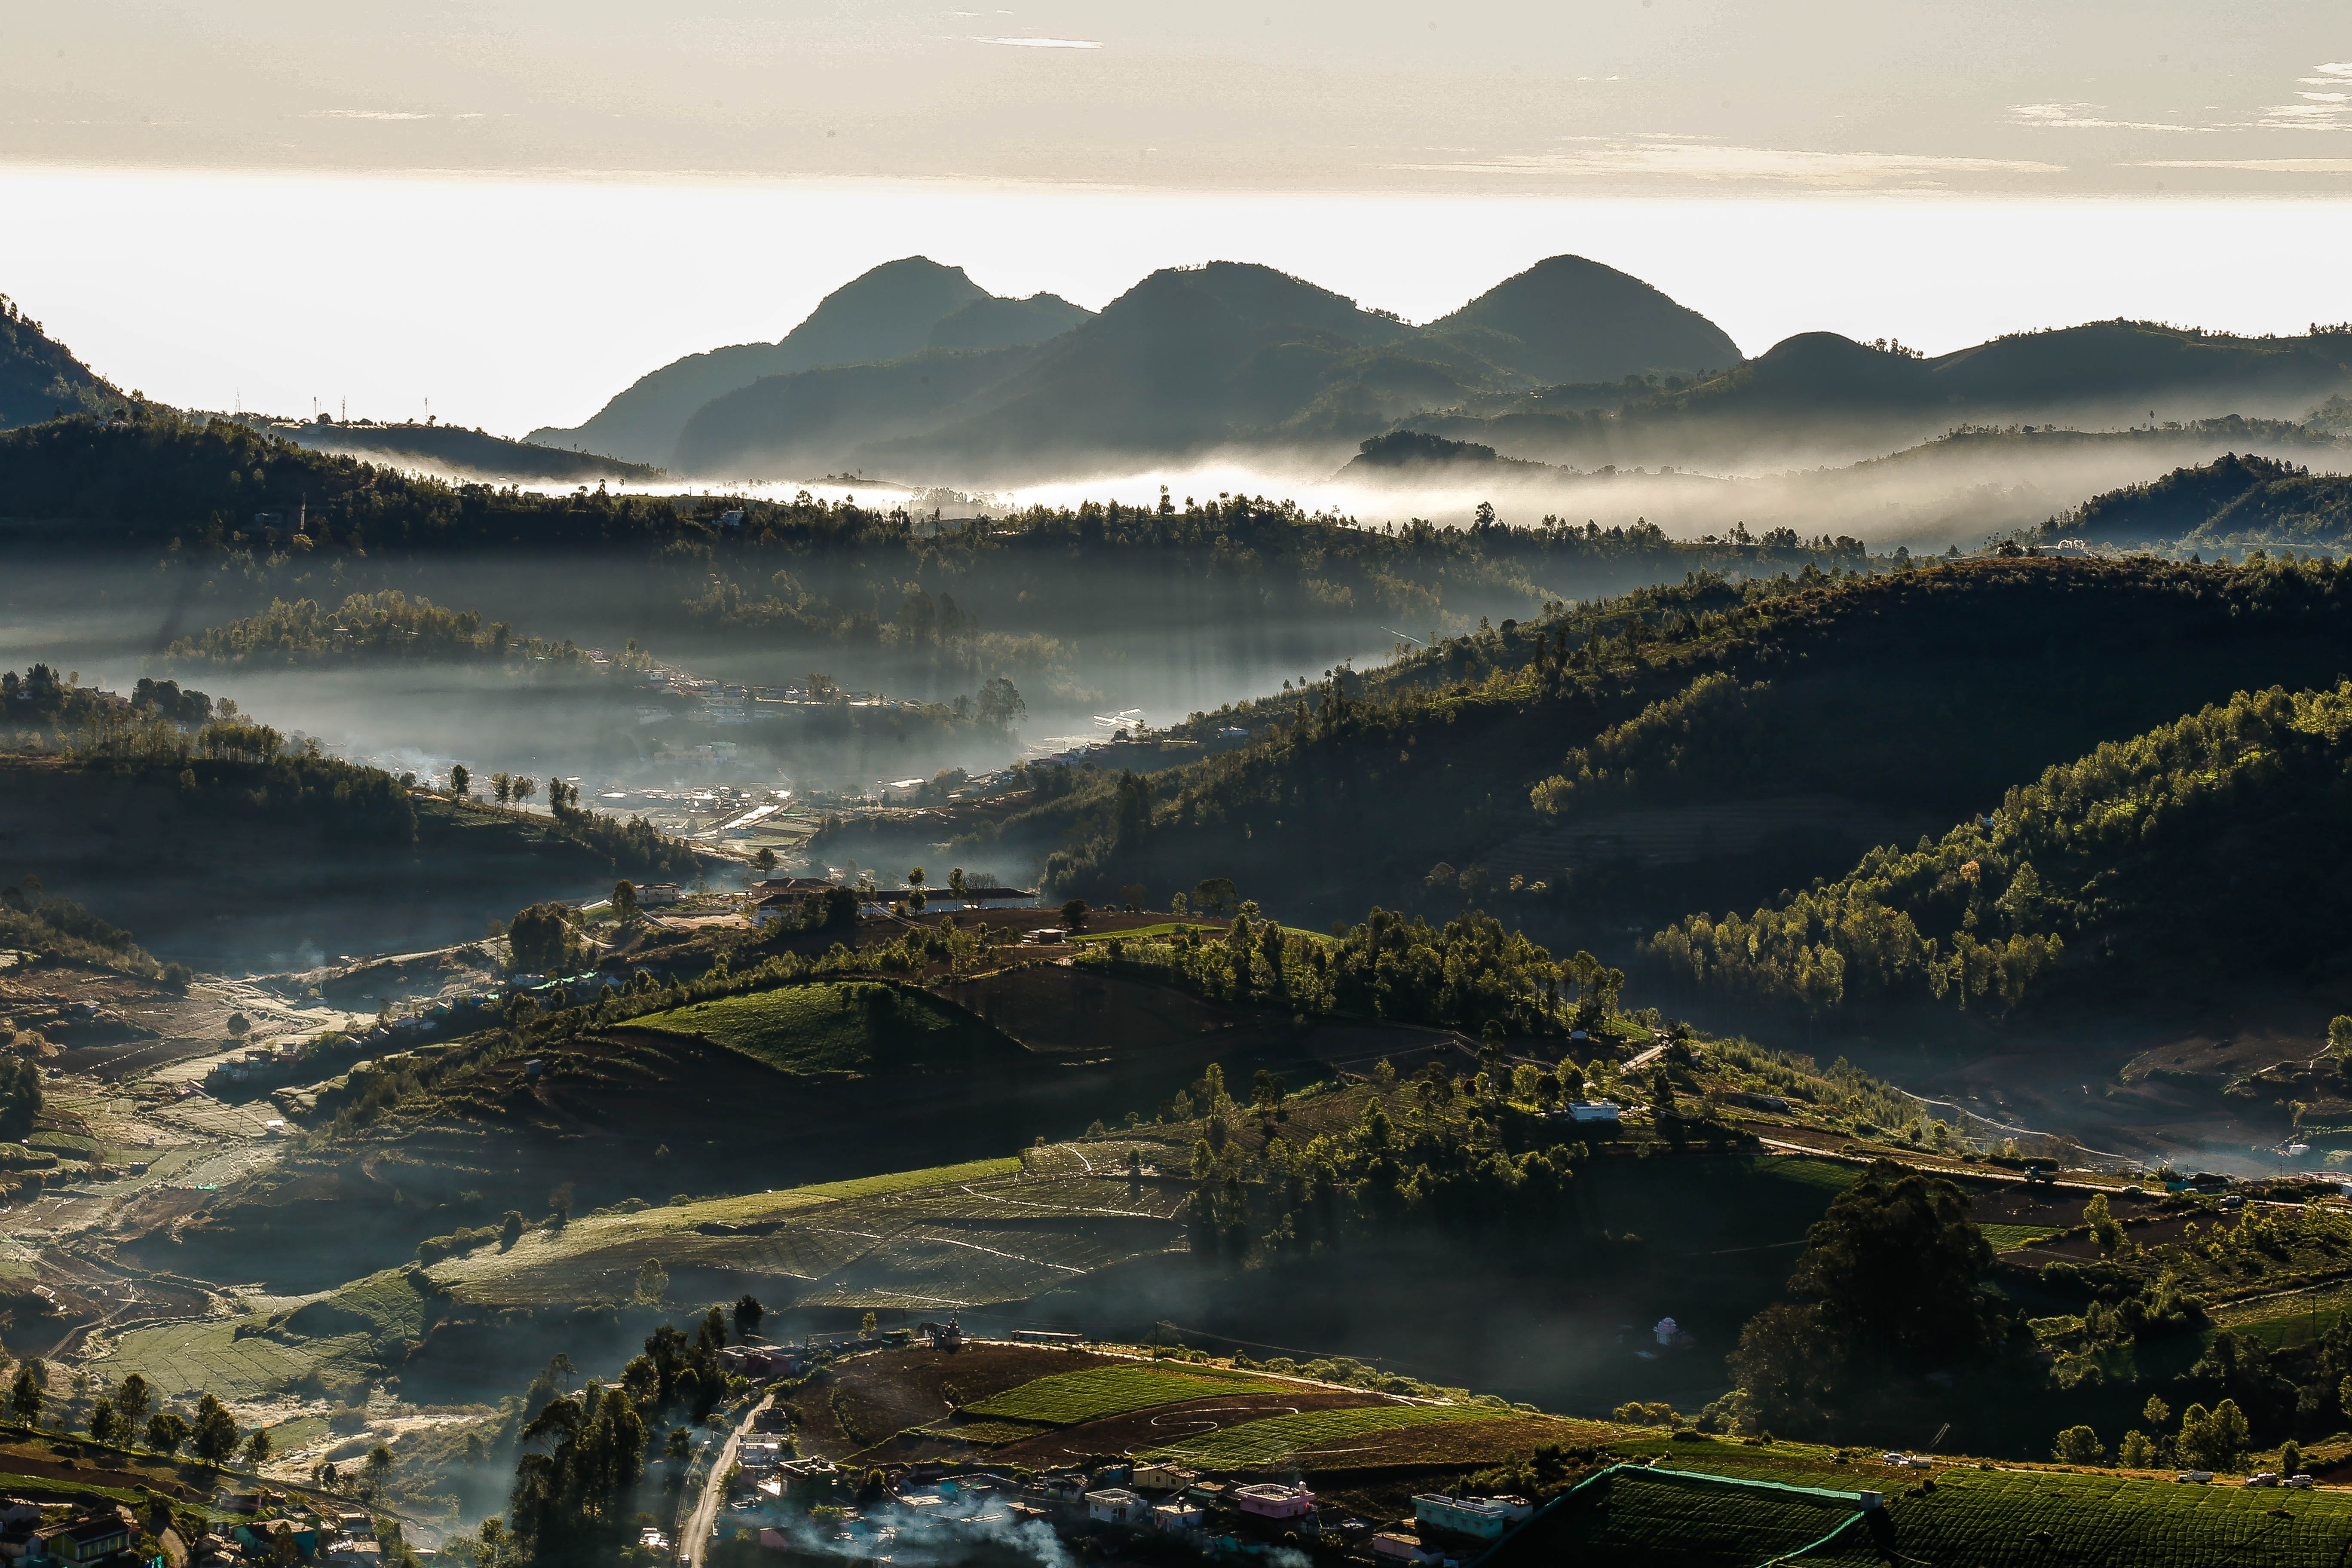 Hills covered by forest and fogs photo